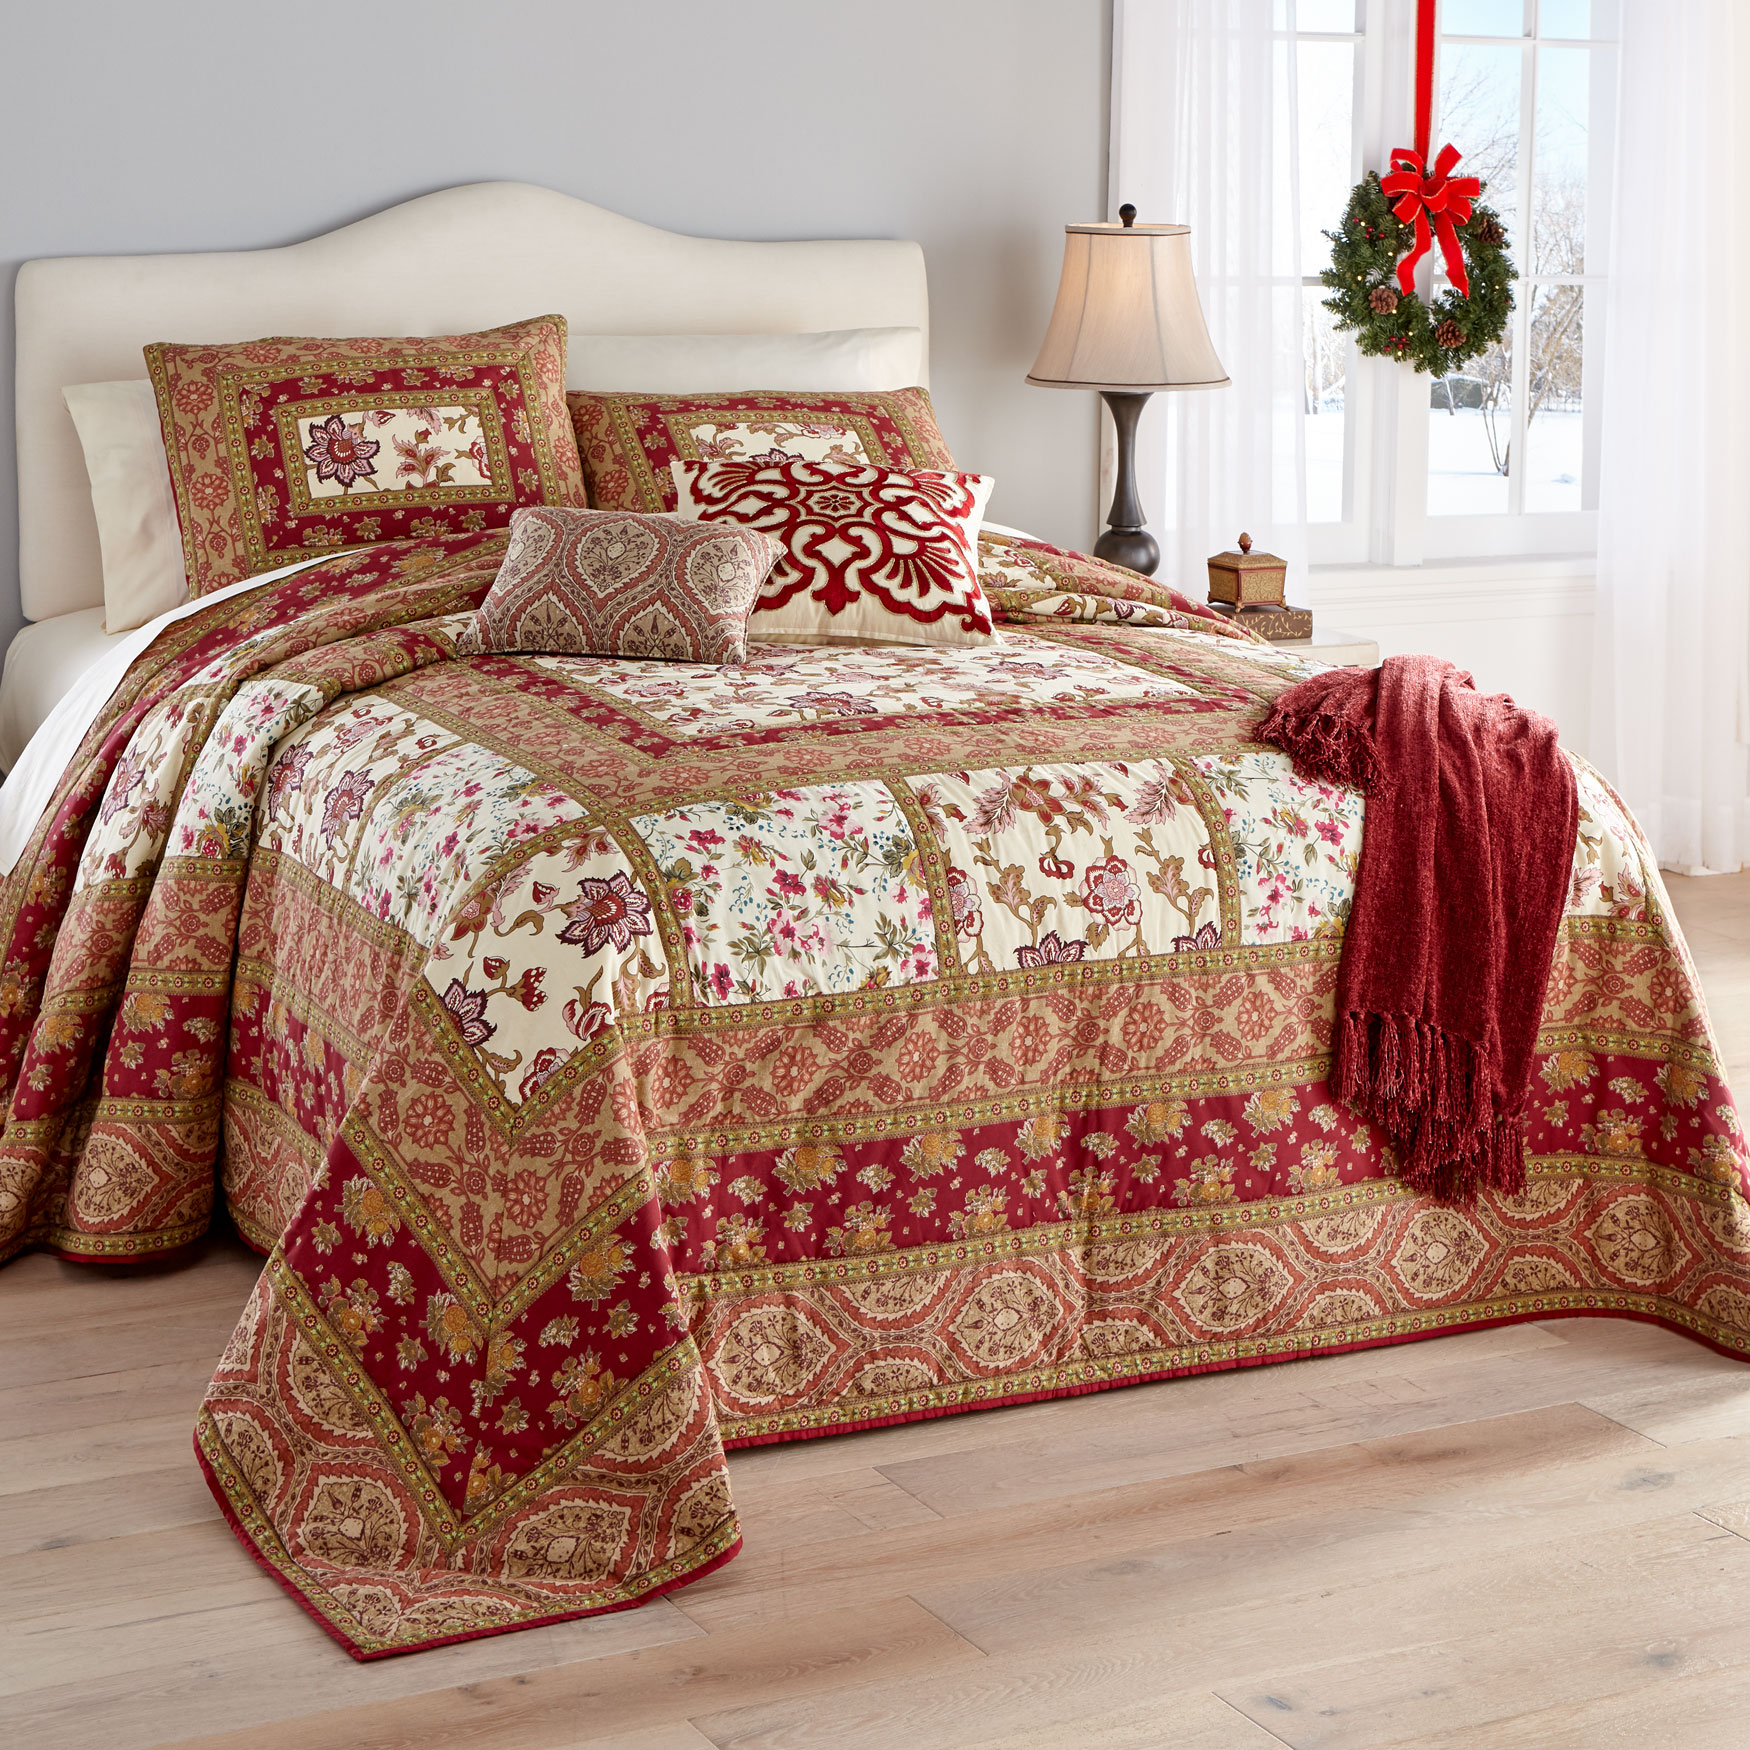 Josephine Patchwork Bedspread Collection,